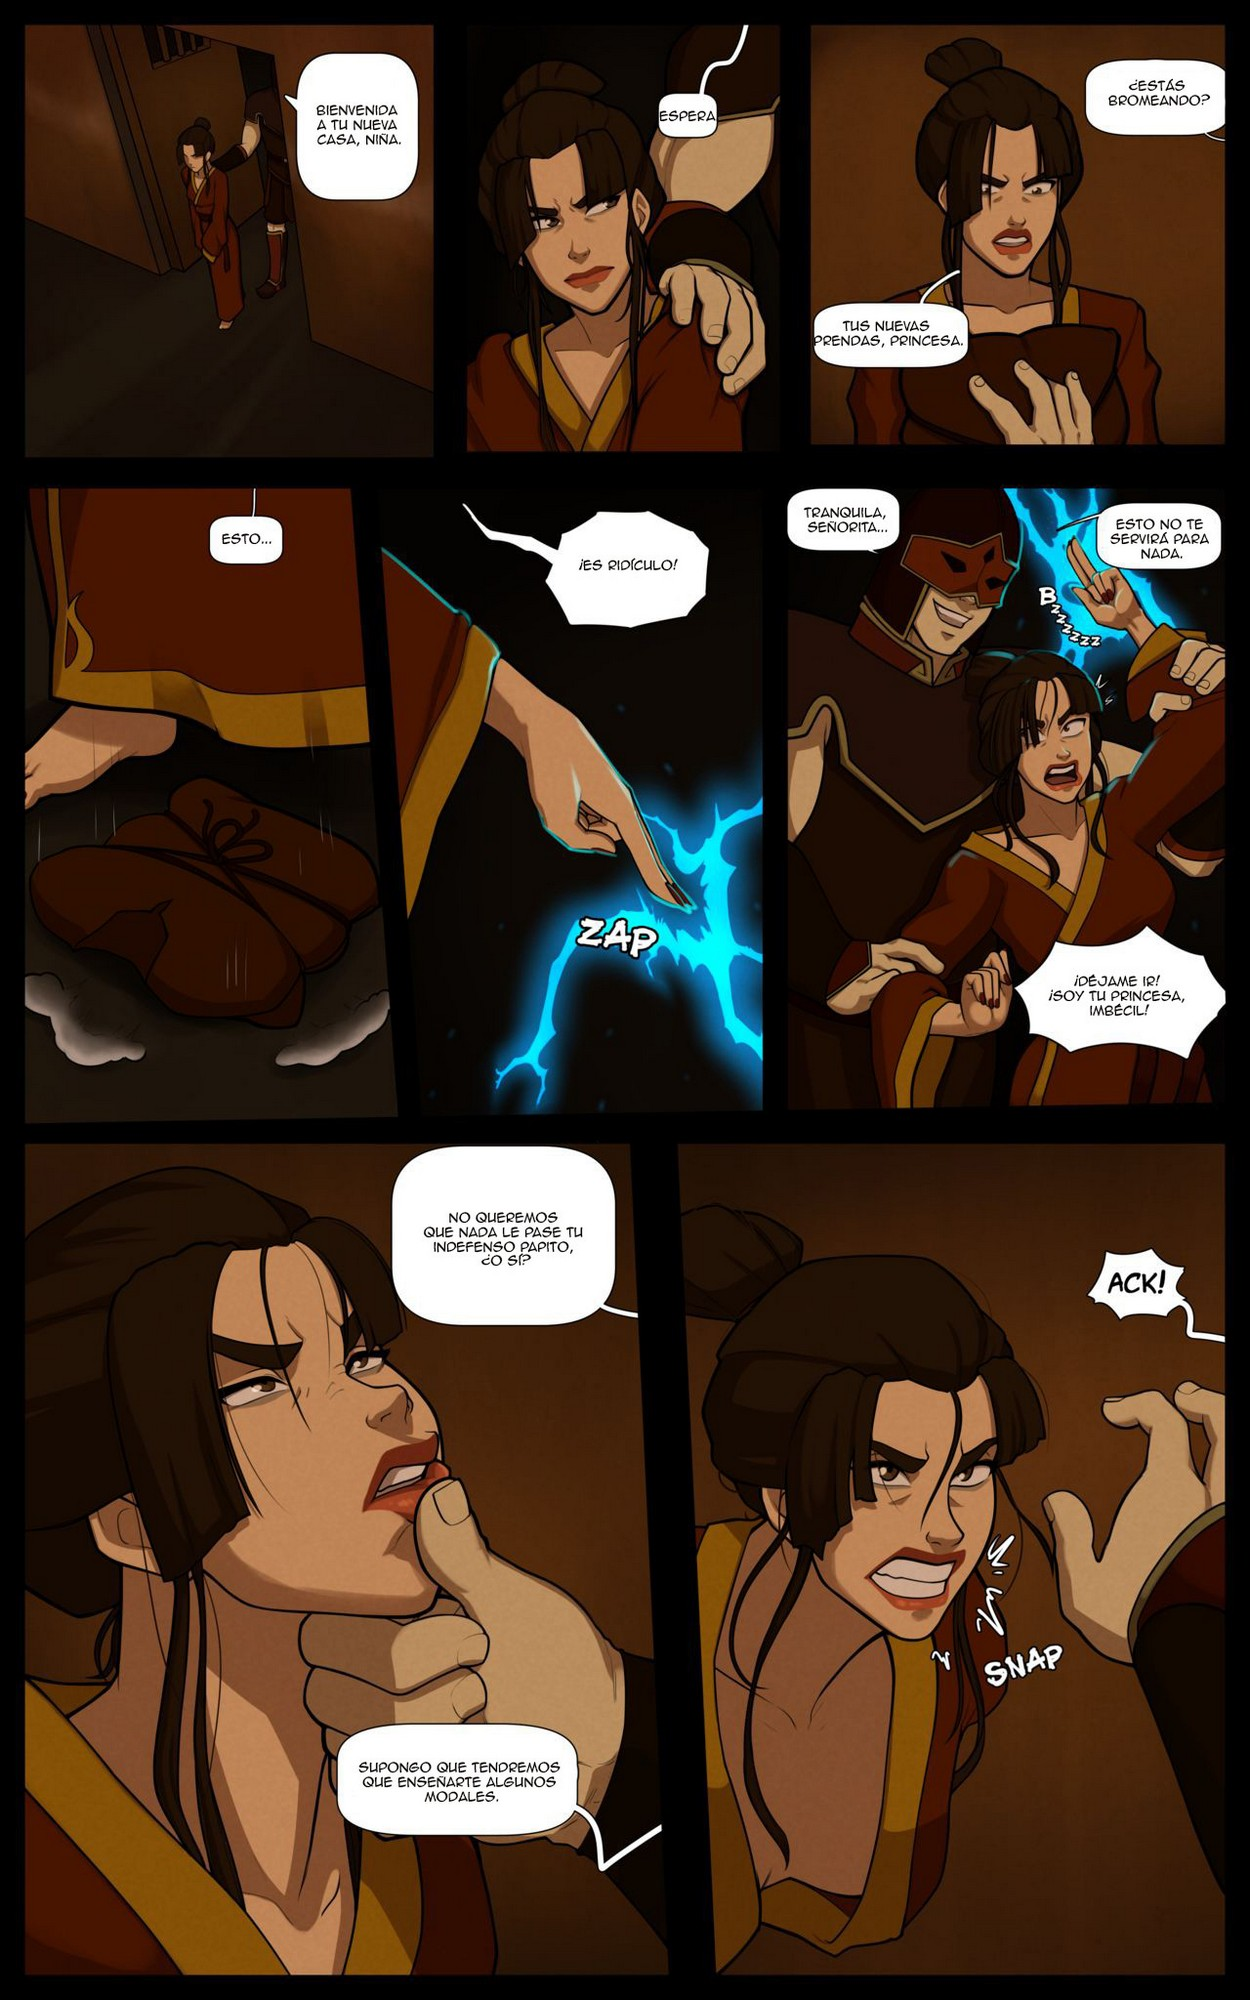 Azula-in-the-Boiling-Rock-03.jpg